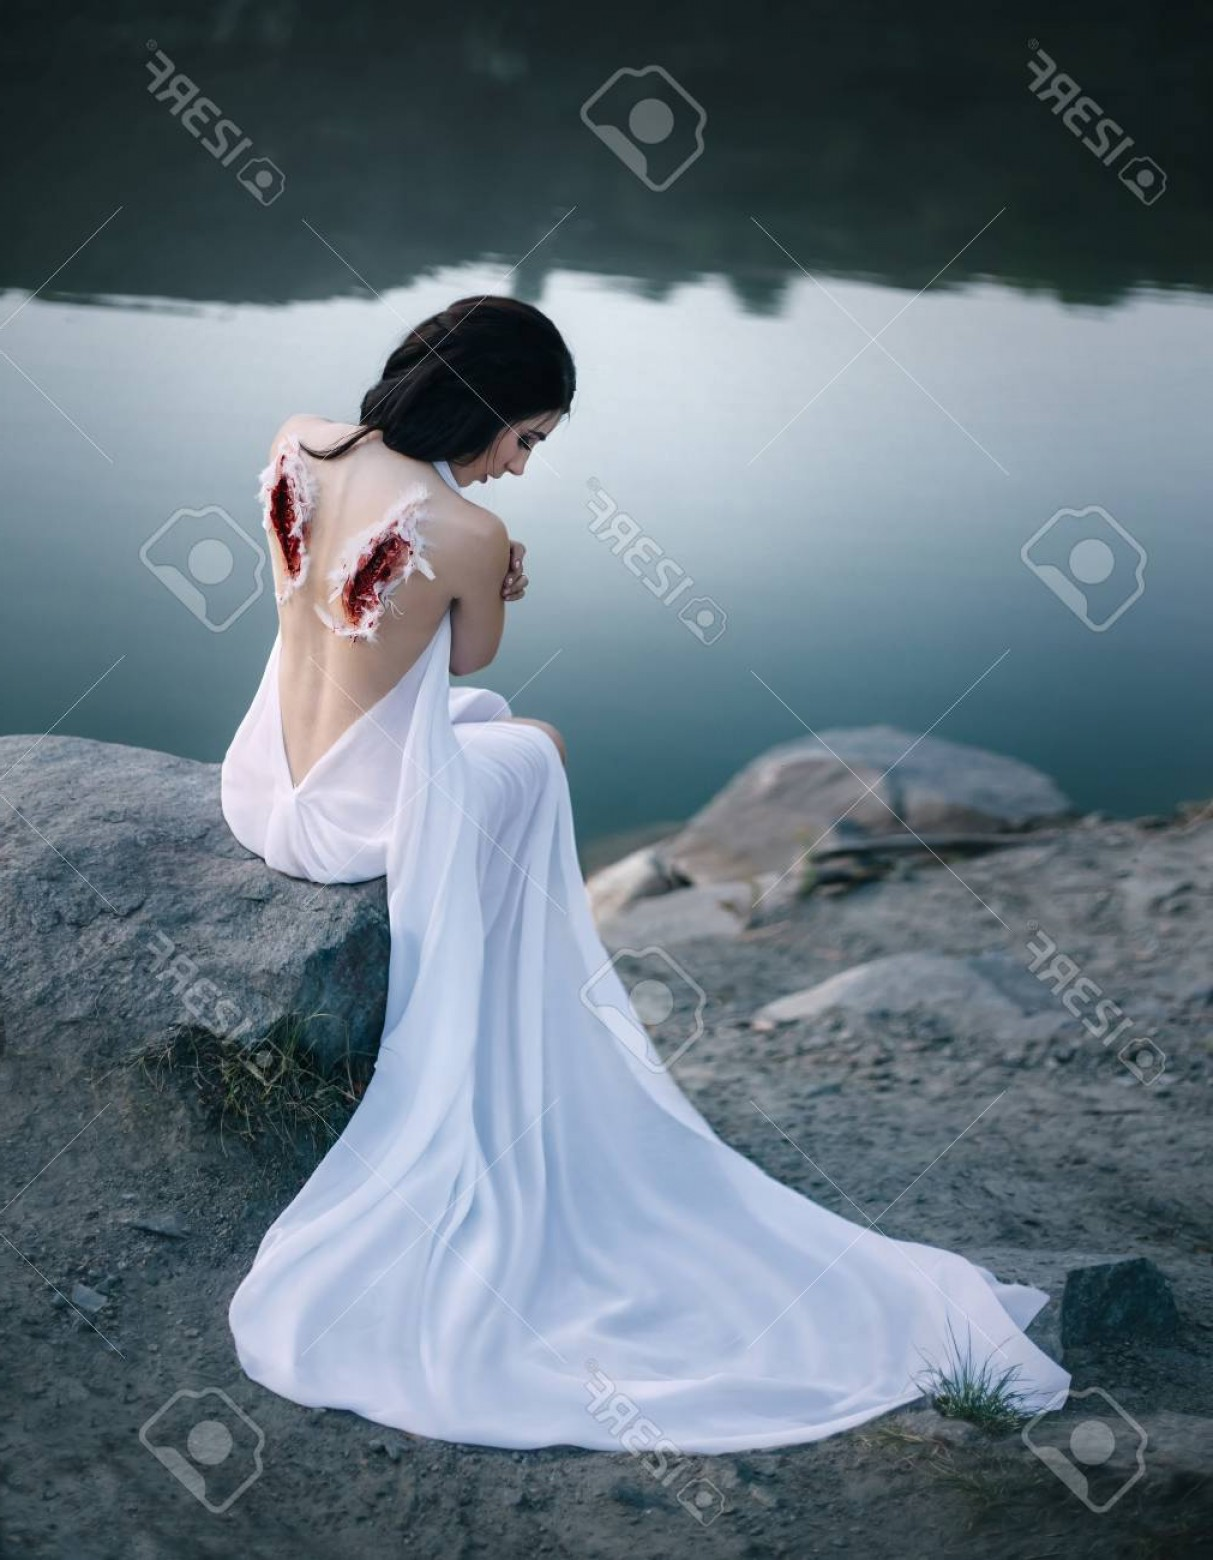 Torn Angel Wings Vector: Photoa Fallen Angel With Torn Off Wings The Girl Repents Of Her Sins The Wounds On Her Back The Marks Of